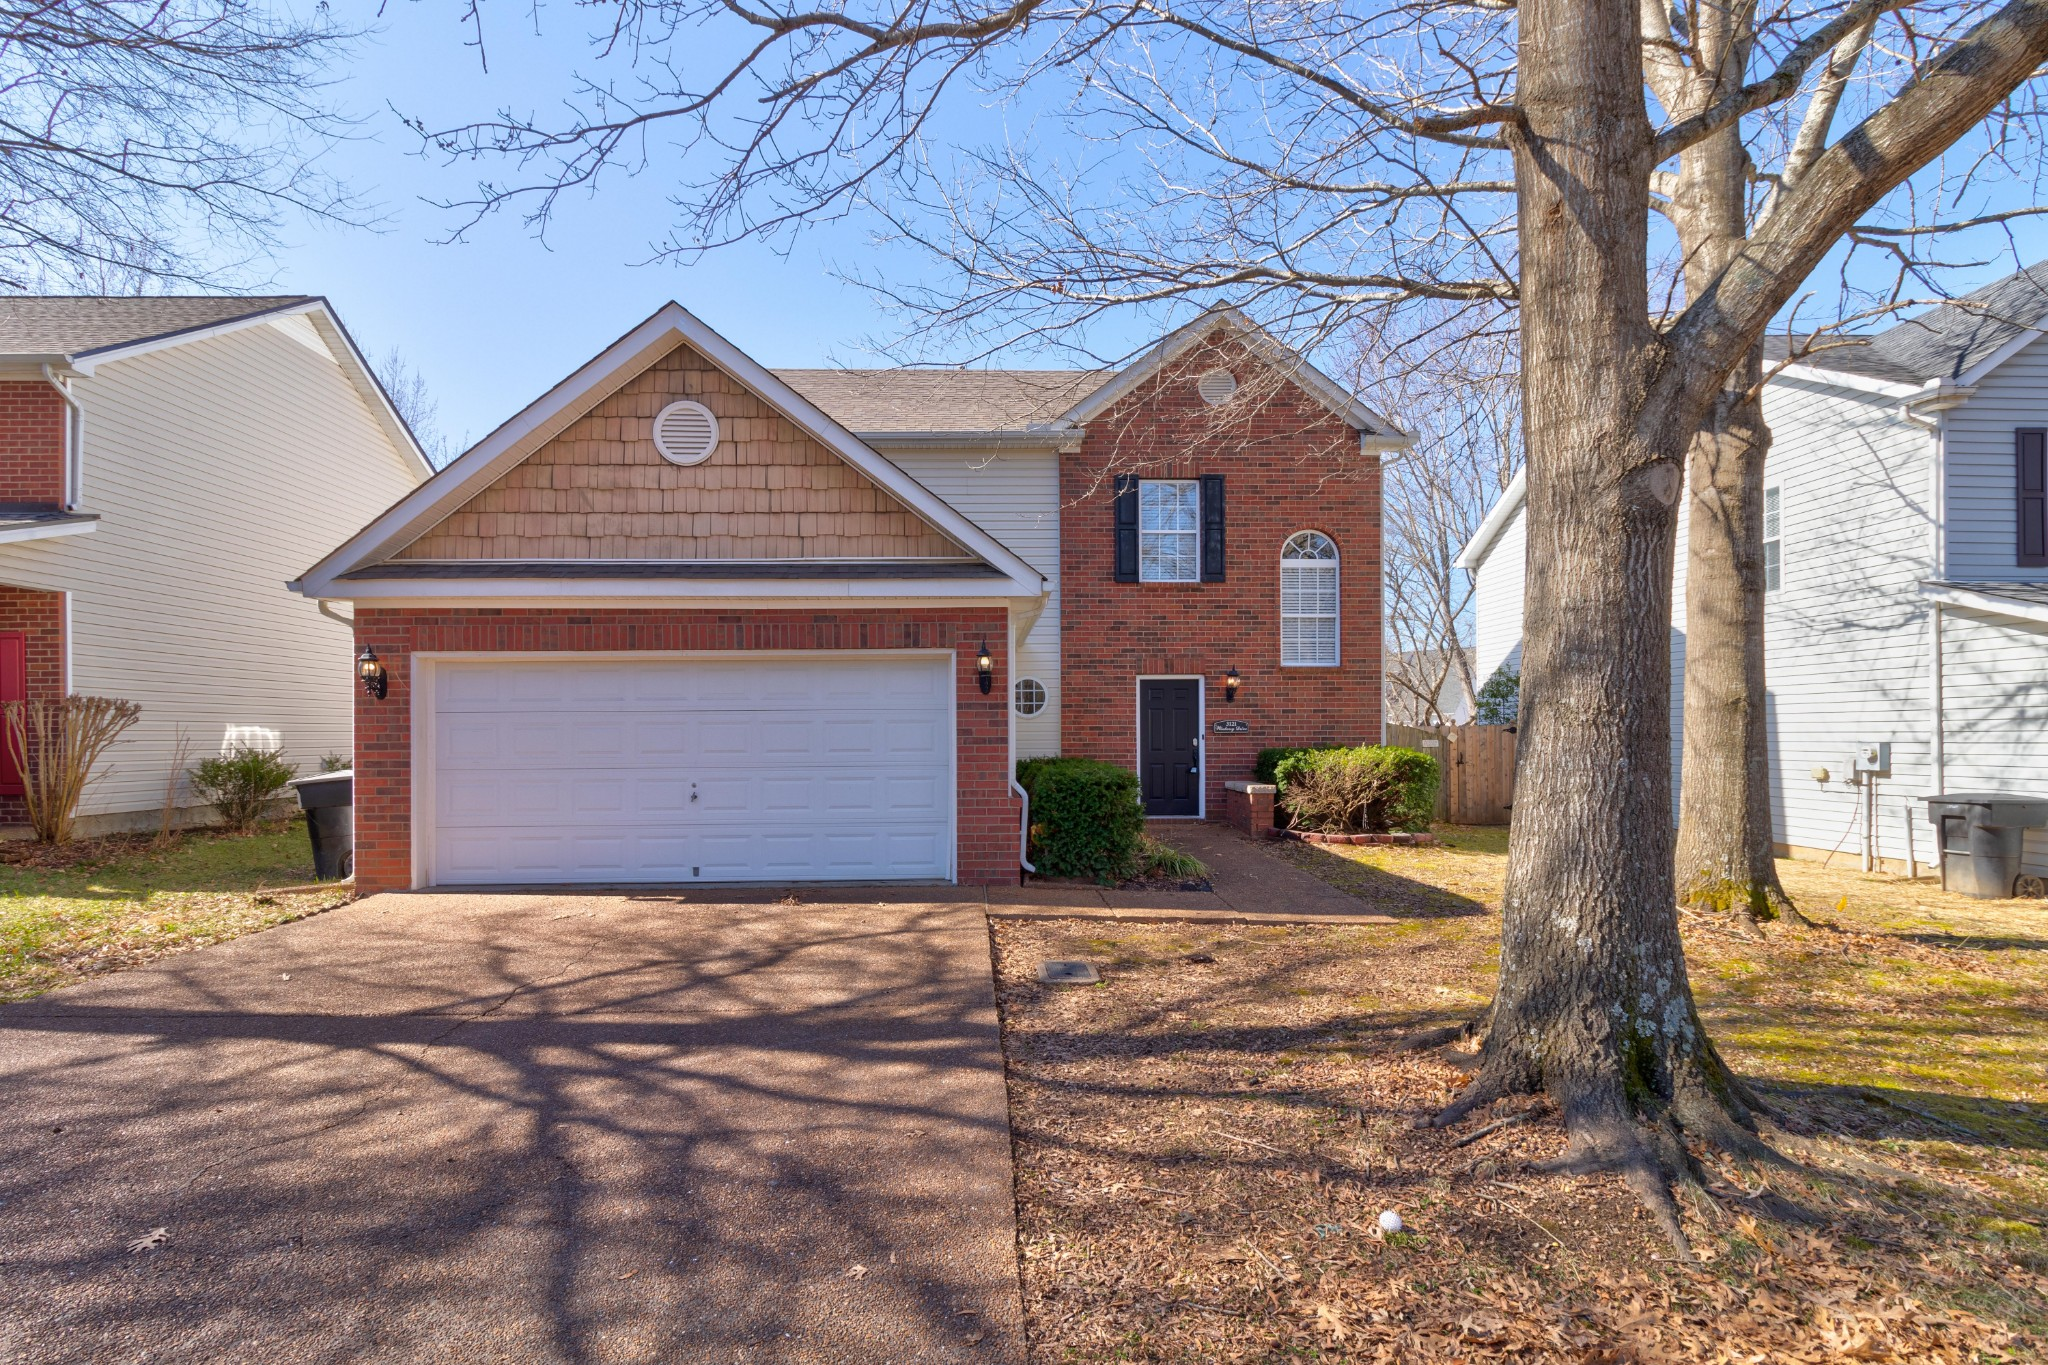 Great 3 bedroom, 2.5 bathroom home! This home features new carpet, great room with fireplace, large primary suite, and fenced yard. Neighborhood features community pool, walking trails, gazebos, and more! Renting is NOT Allowed for the 1st. three years of ownership then it can be rented if approved by the HOA.